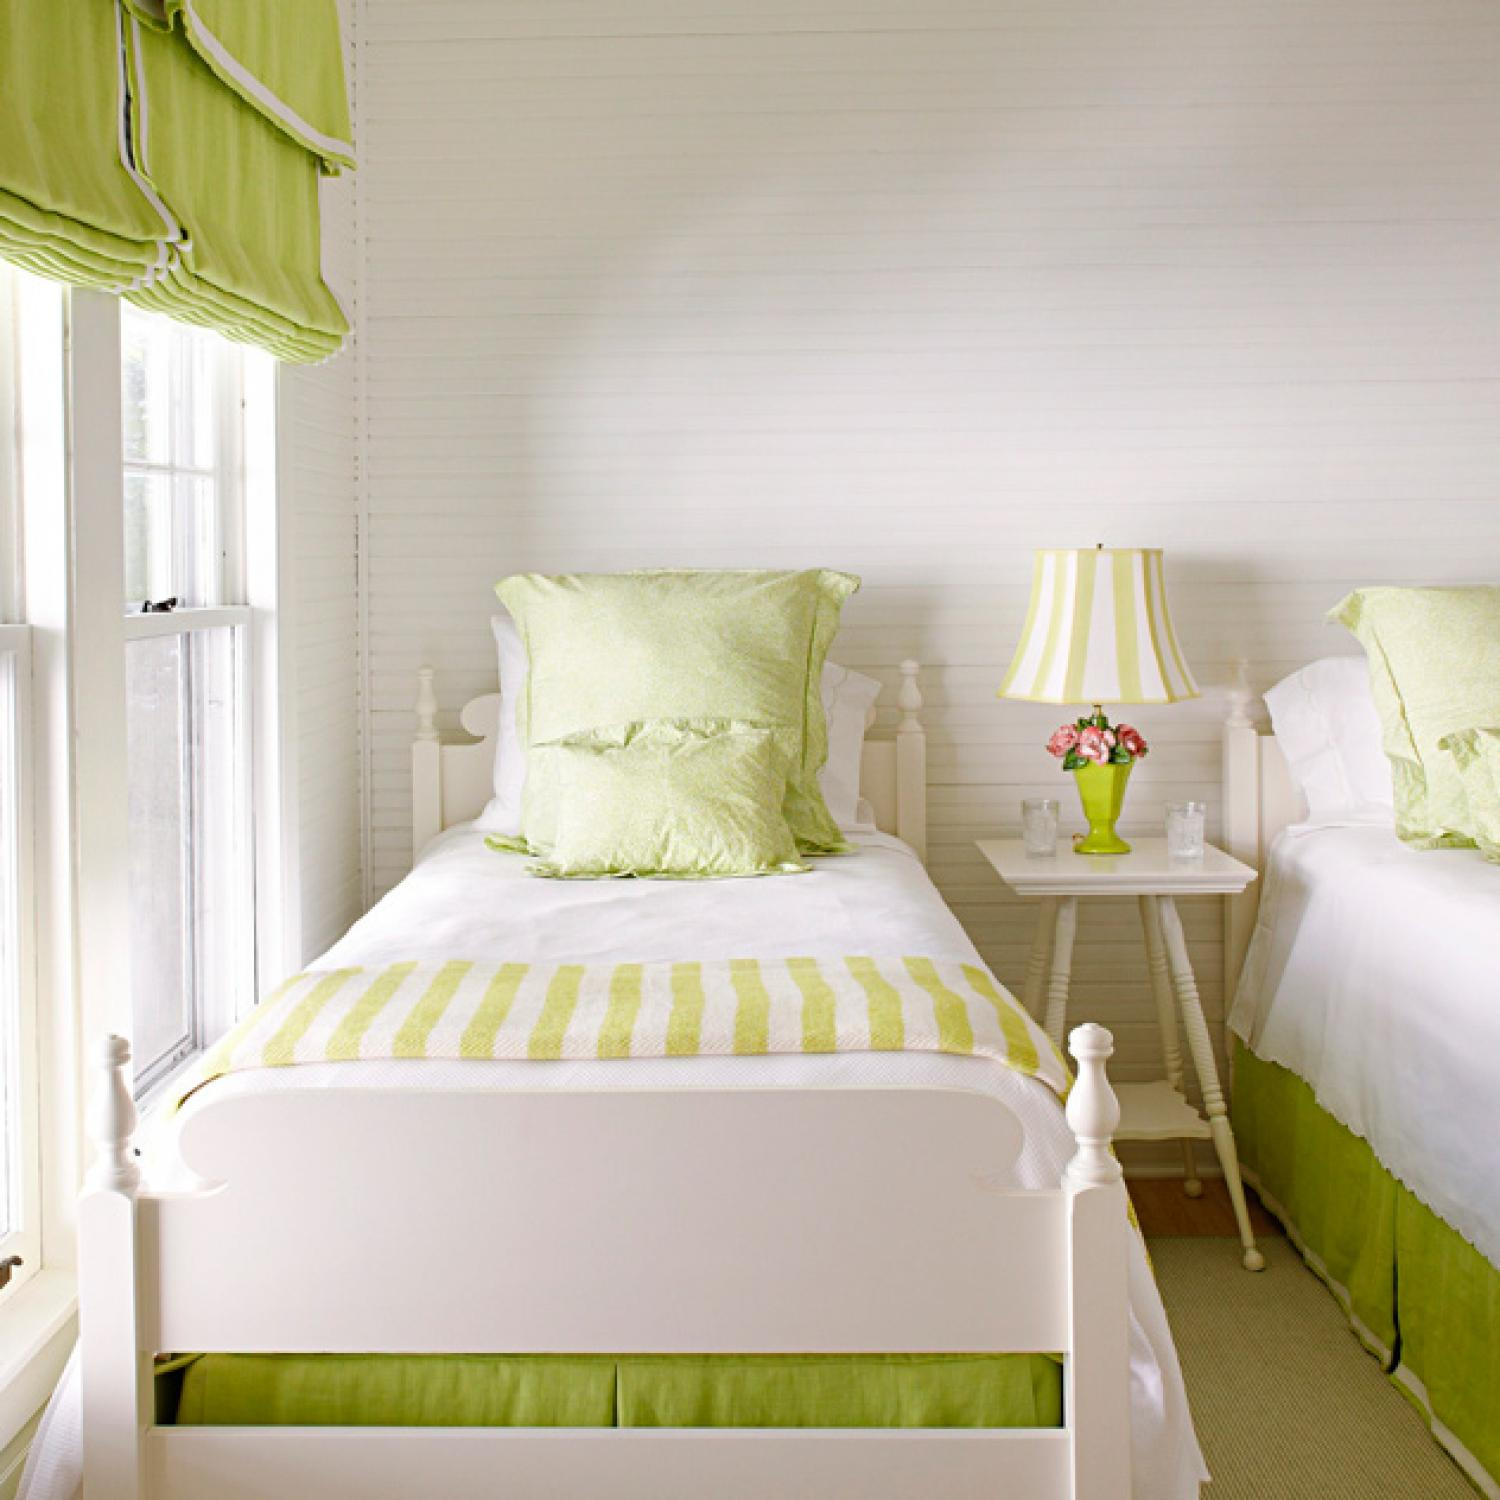 Fullsize Of Bed Ideas For Small Bedrooms